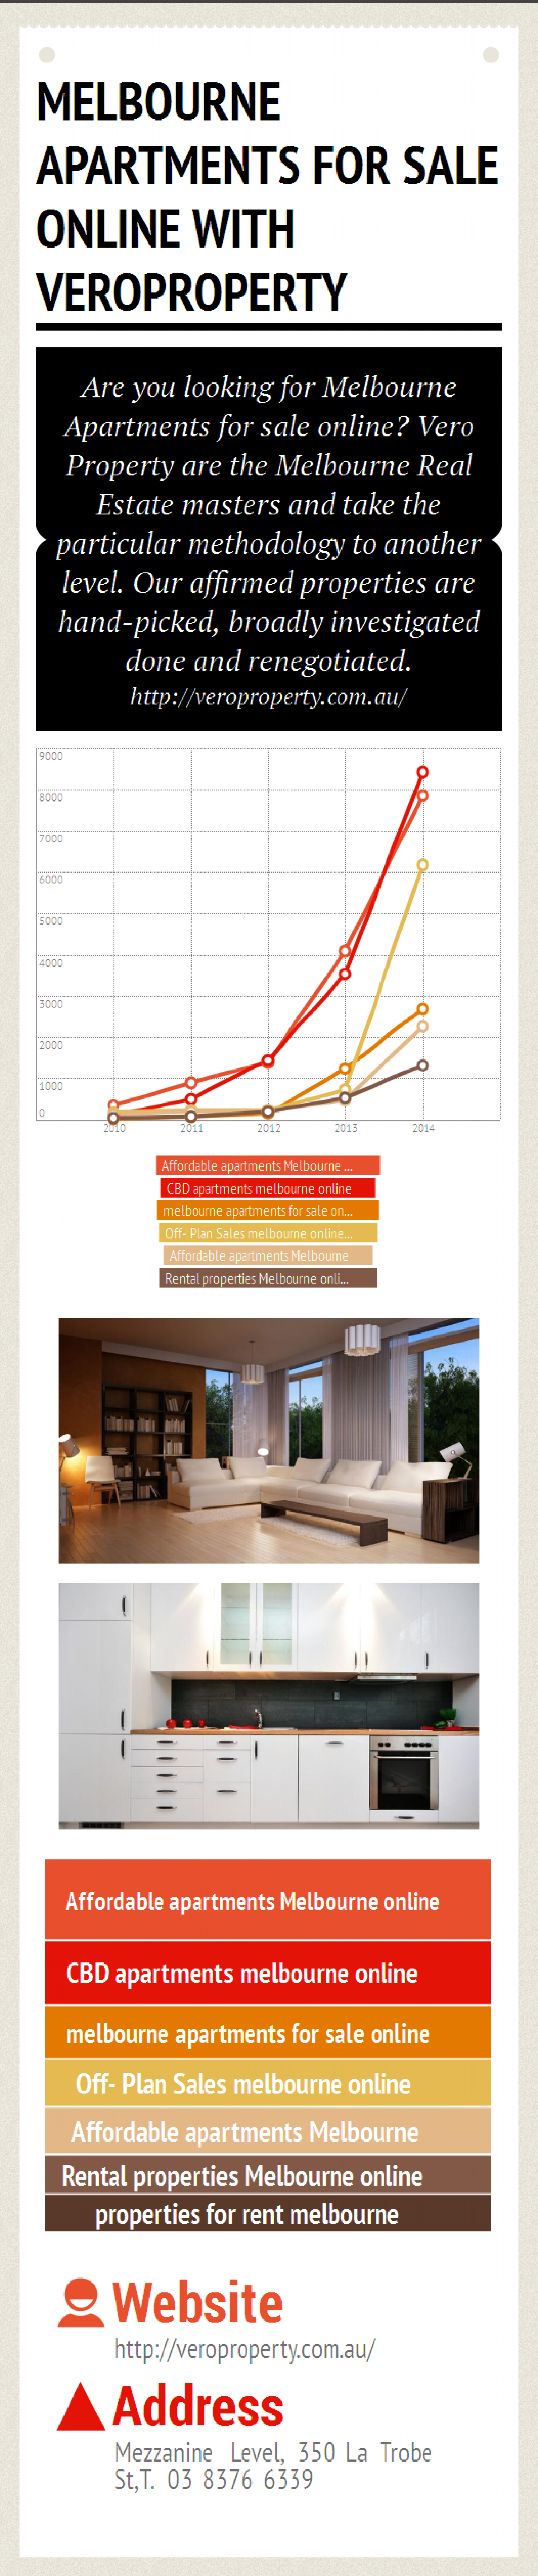 Melbourne Apartments For Sale Online With Veroproperty Infographic